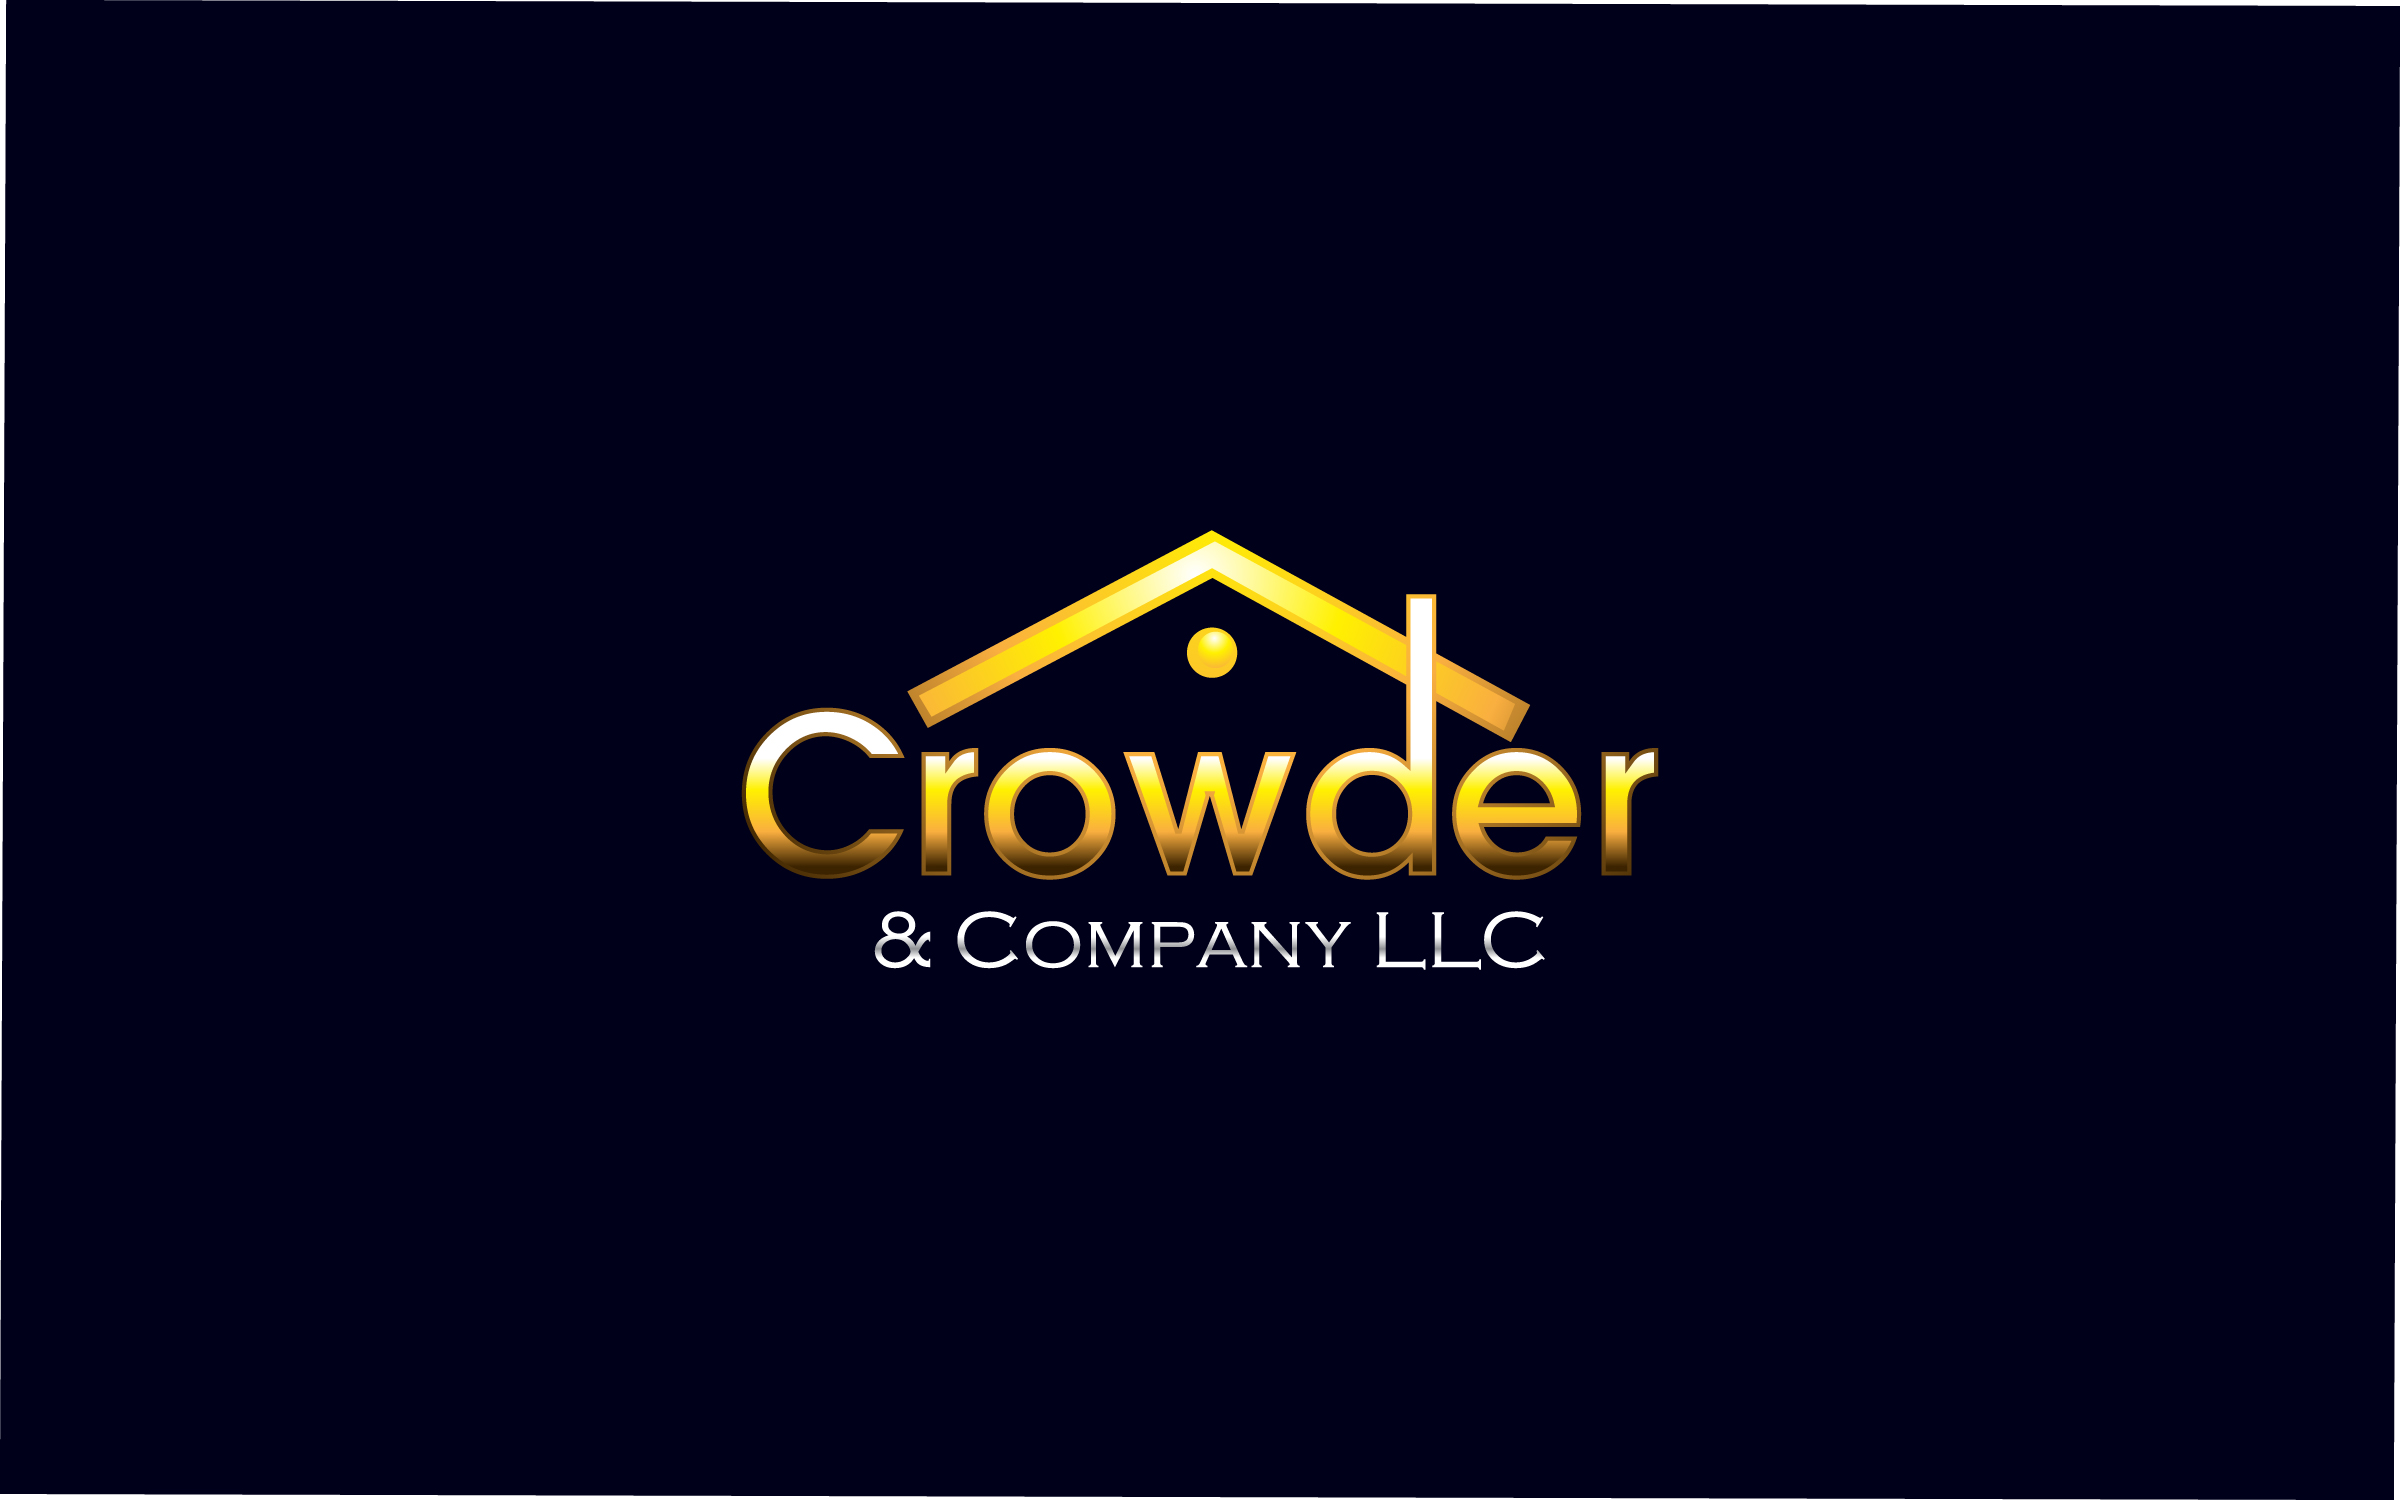 Crowder Financial LLC09 (2).jpg